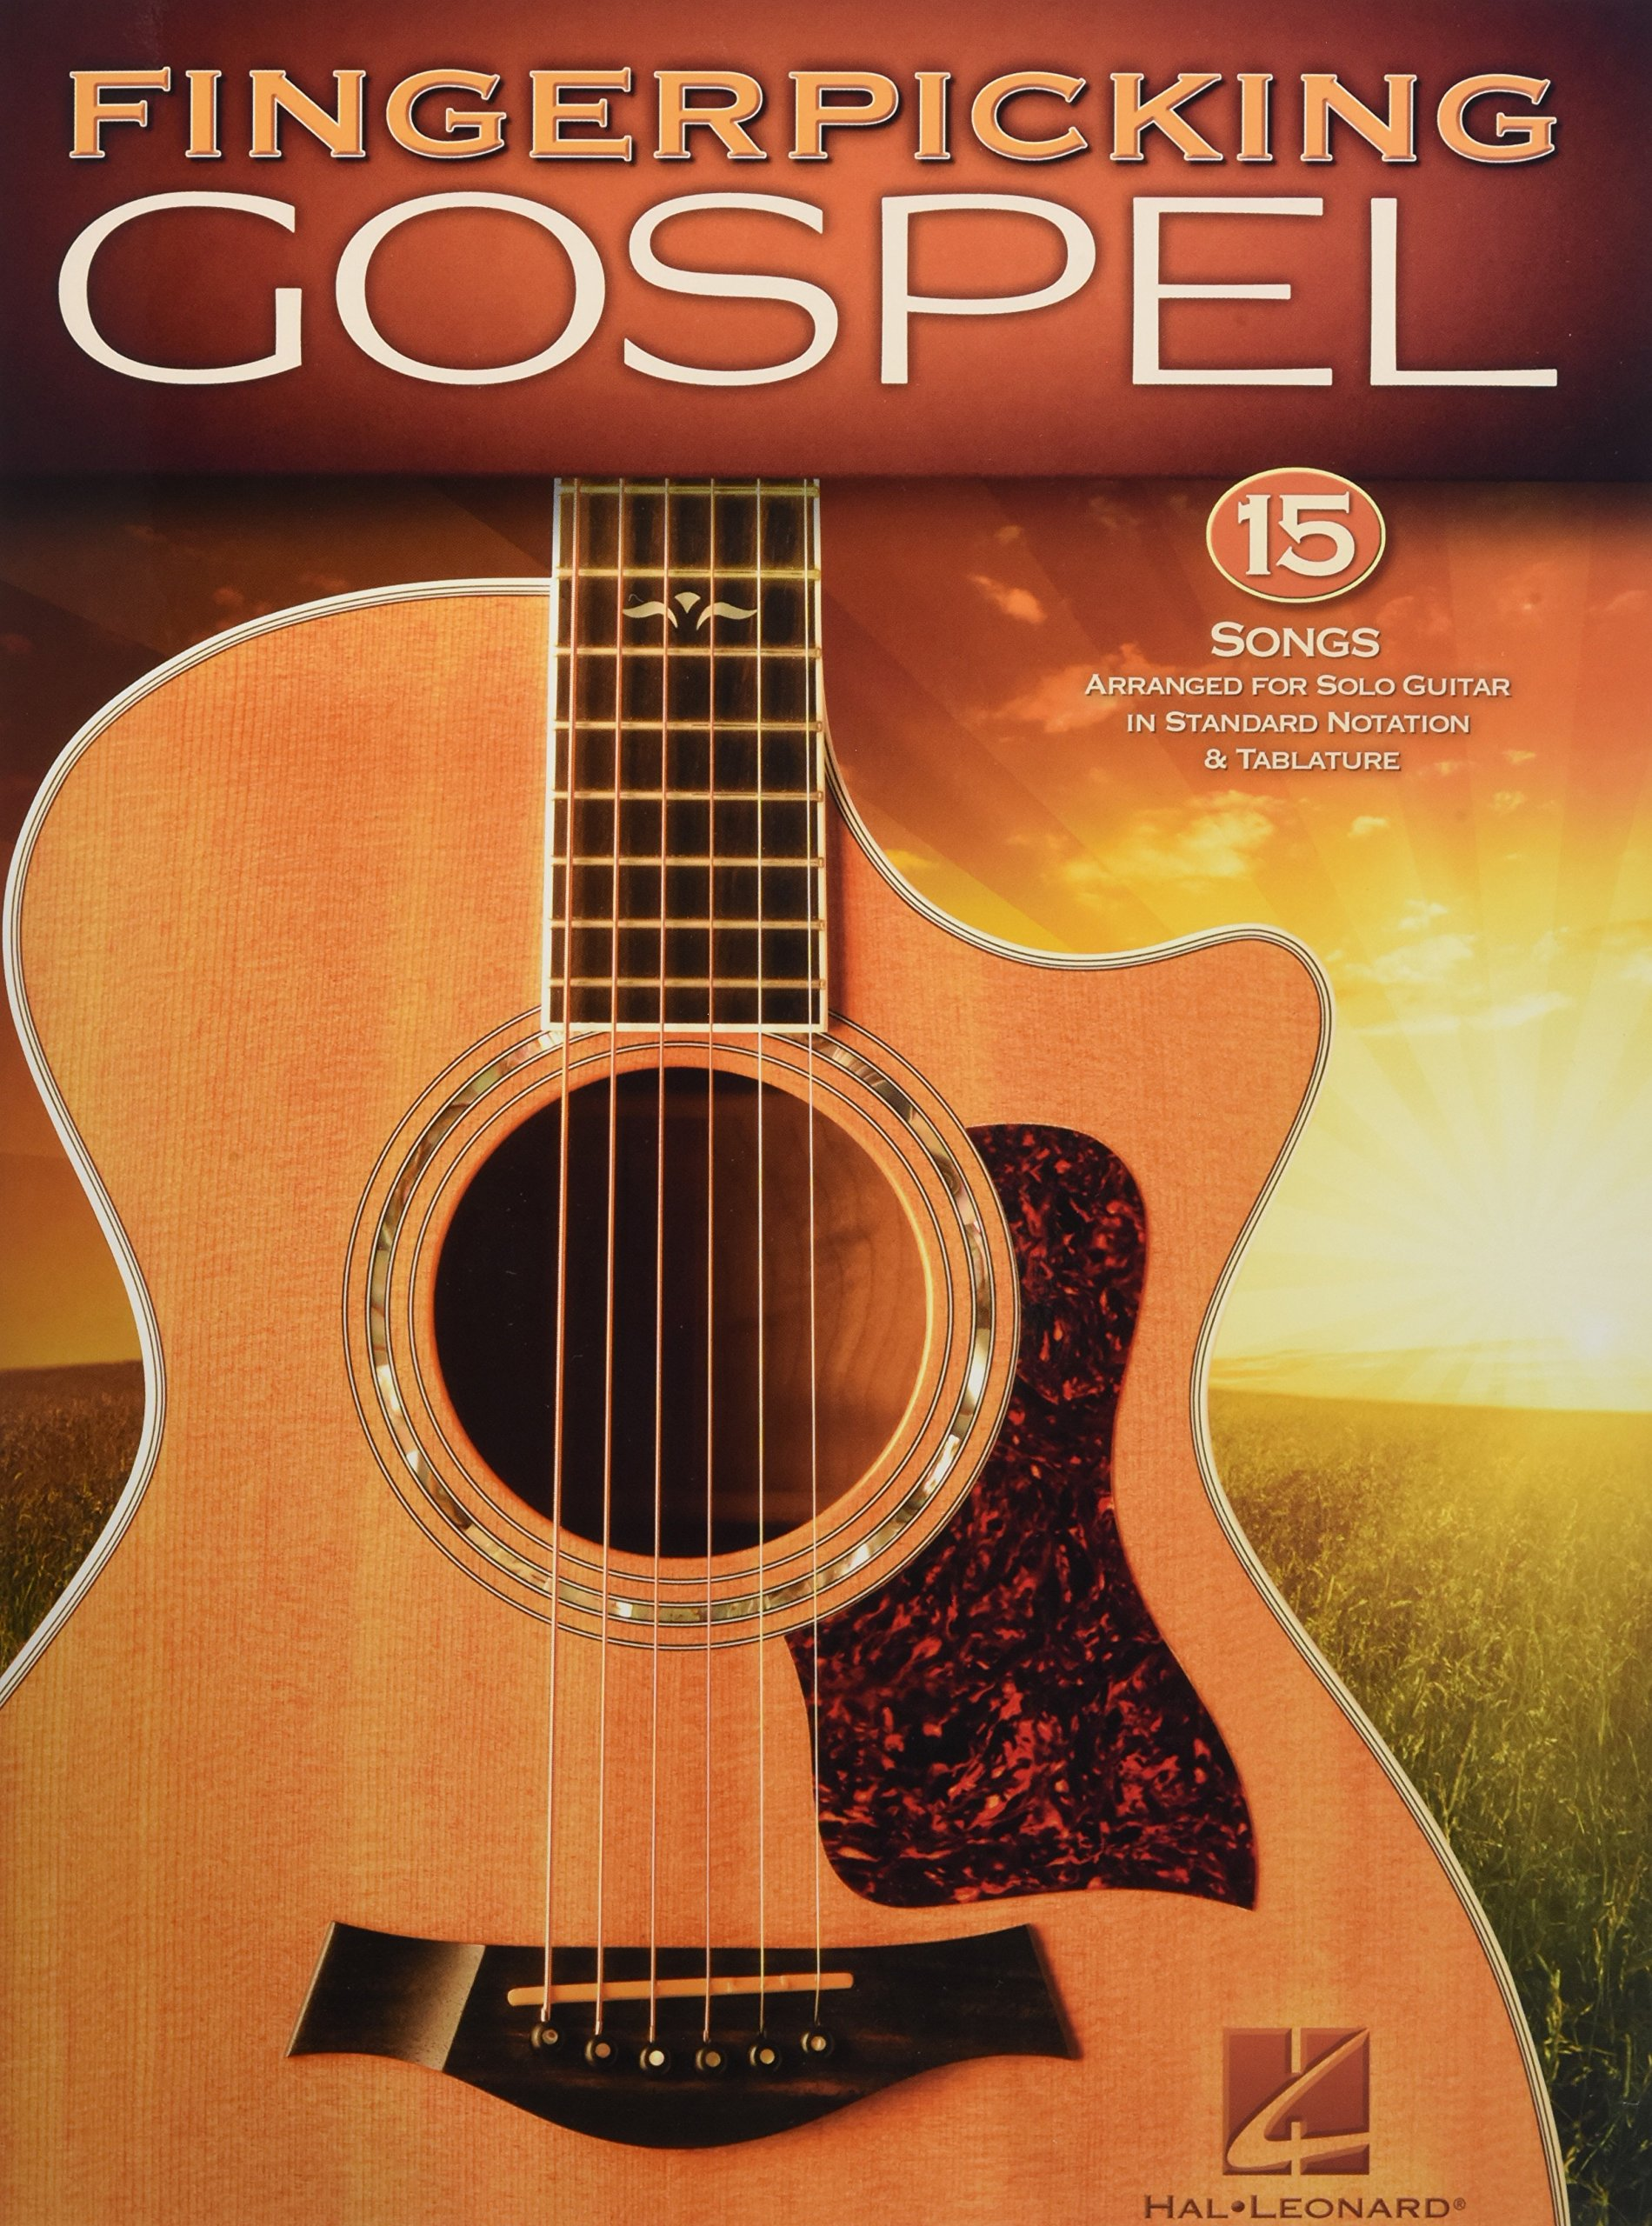 Fingerpicking Gospel (Guitar Solo): Hal Leonard Corp.: 9781423468776:  Amazon.com: Books